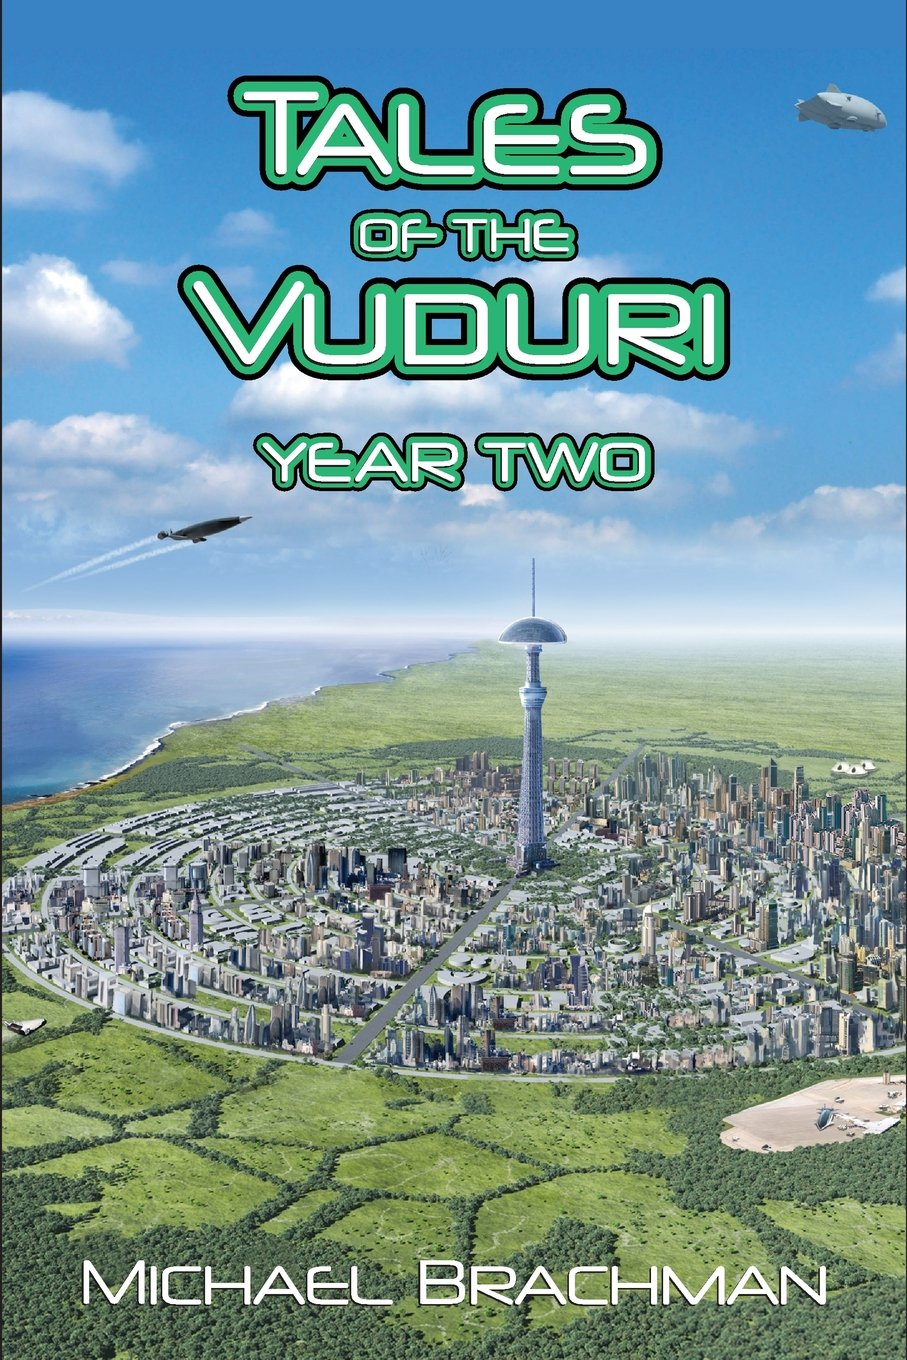 Download Tales of the Vuduri: Year Two (Volume 2) pdf